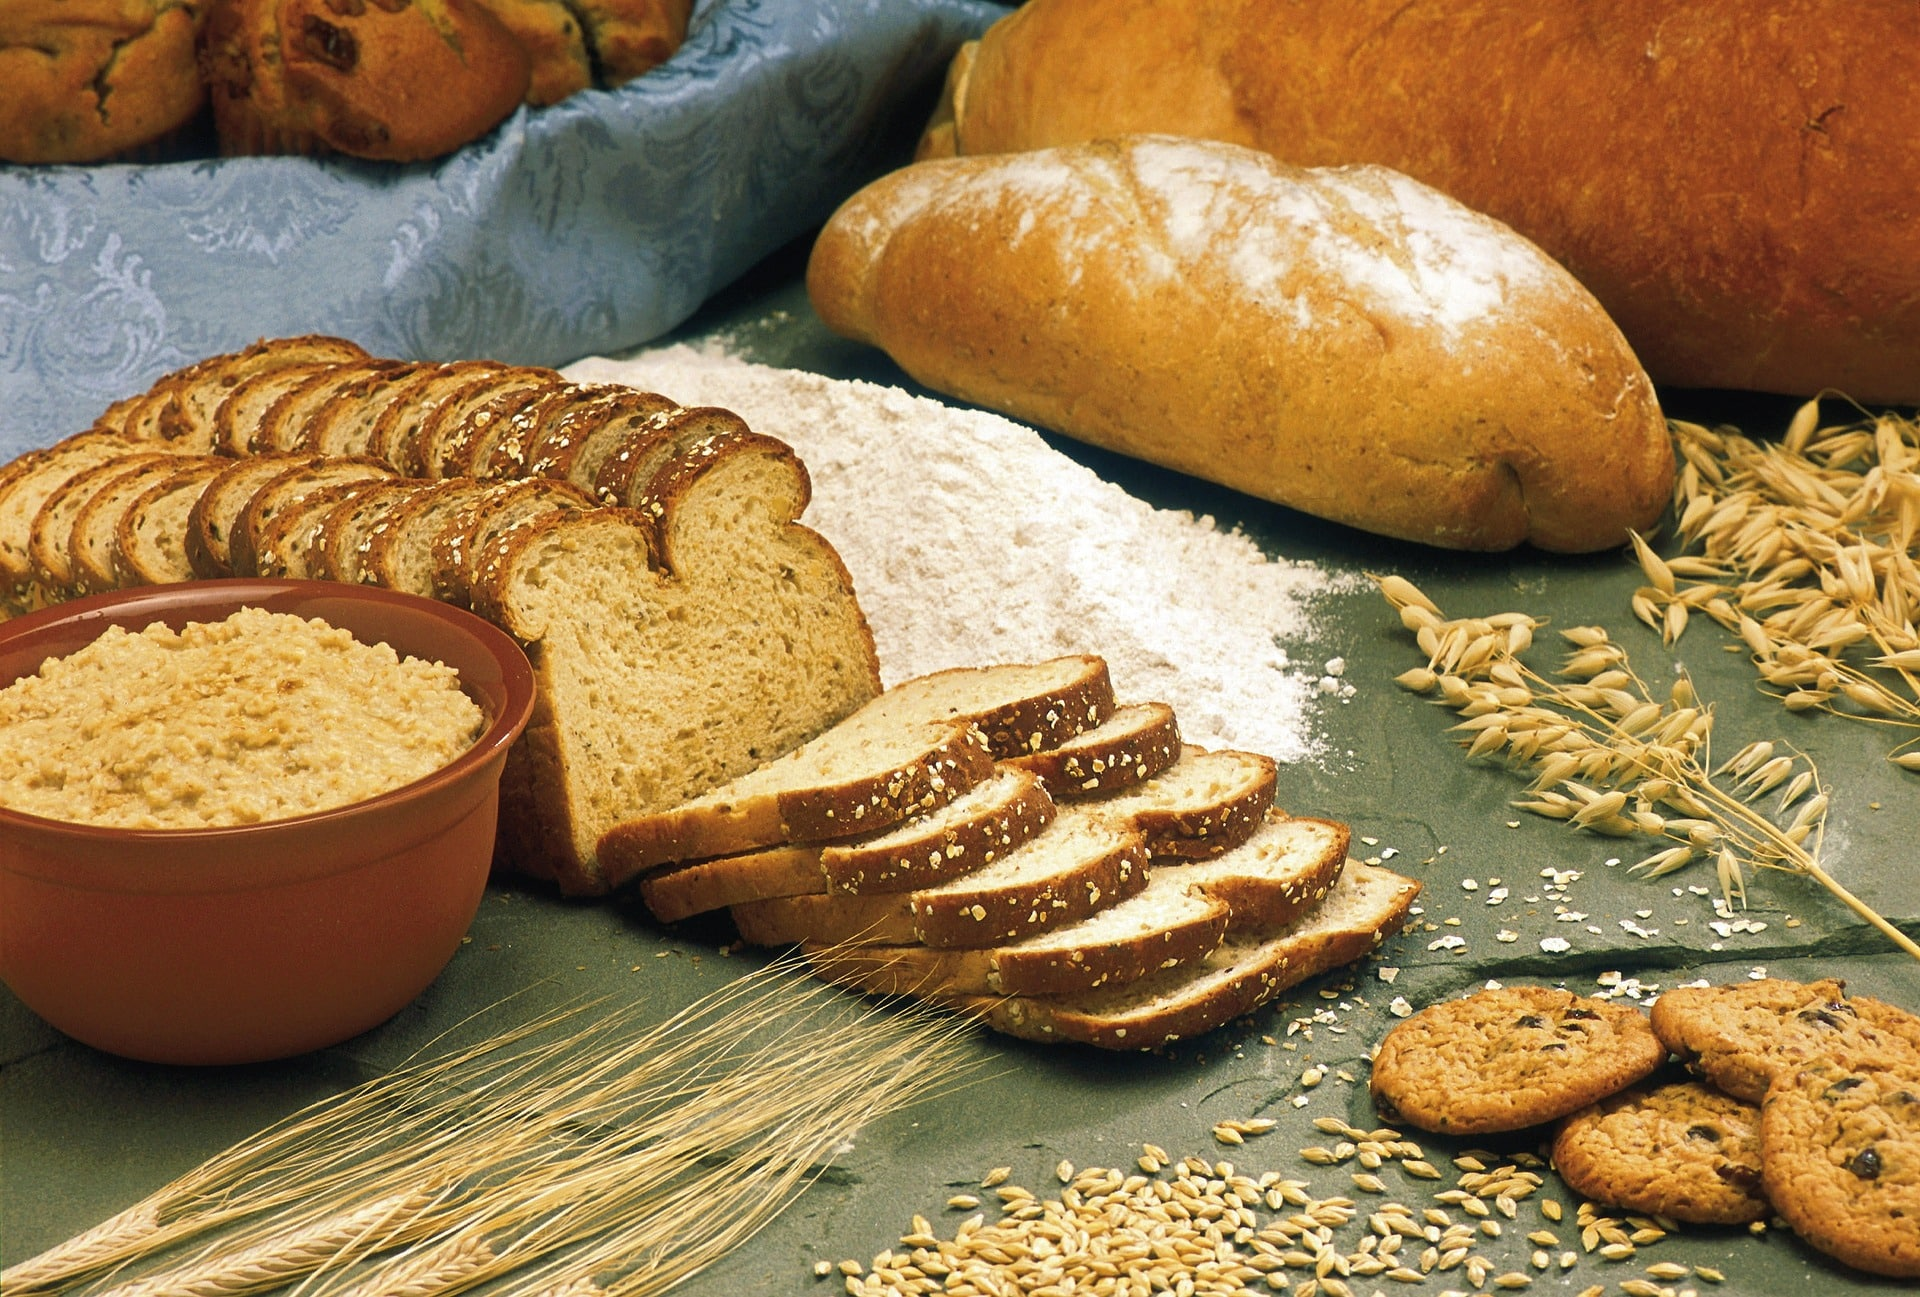 Carbohydrate Diets in Clinical Nutritional Practice